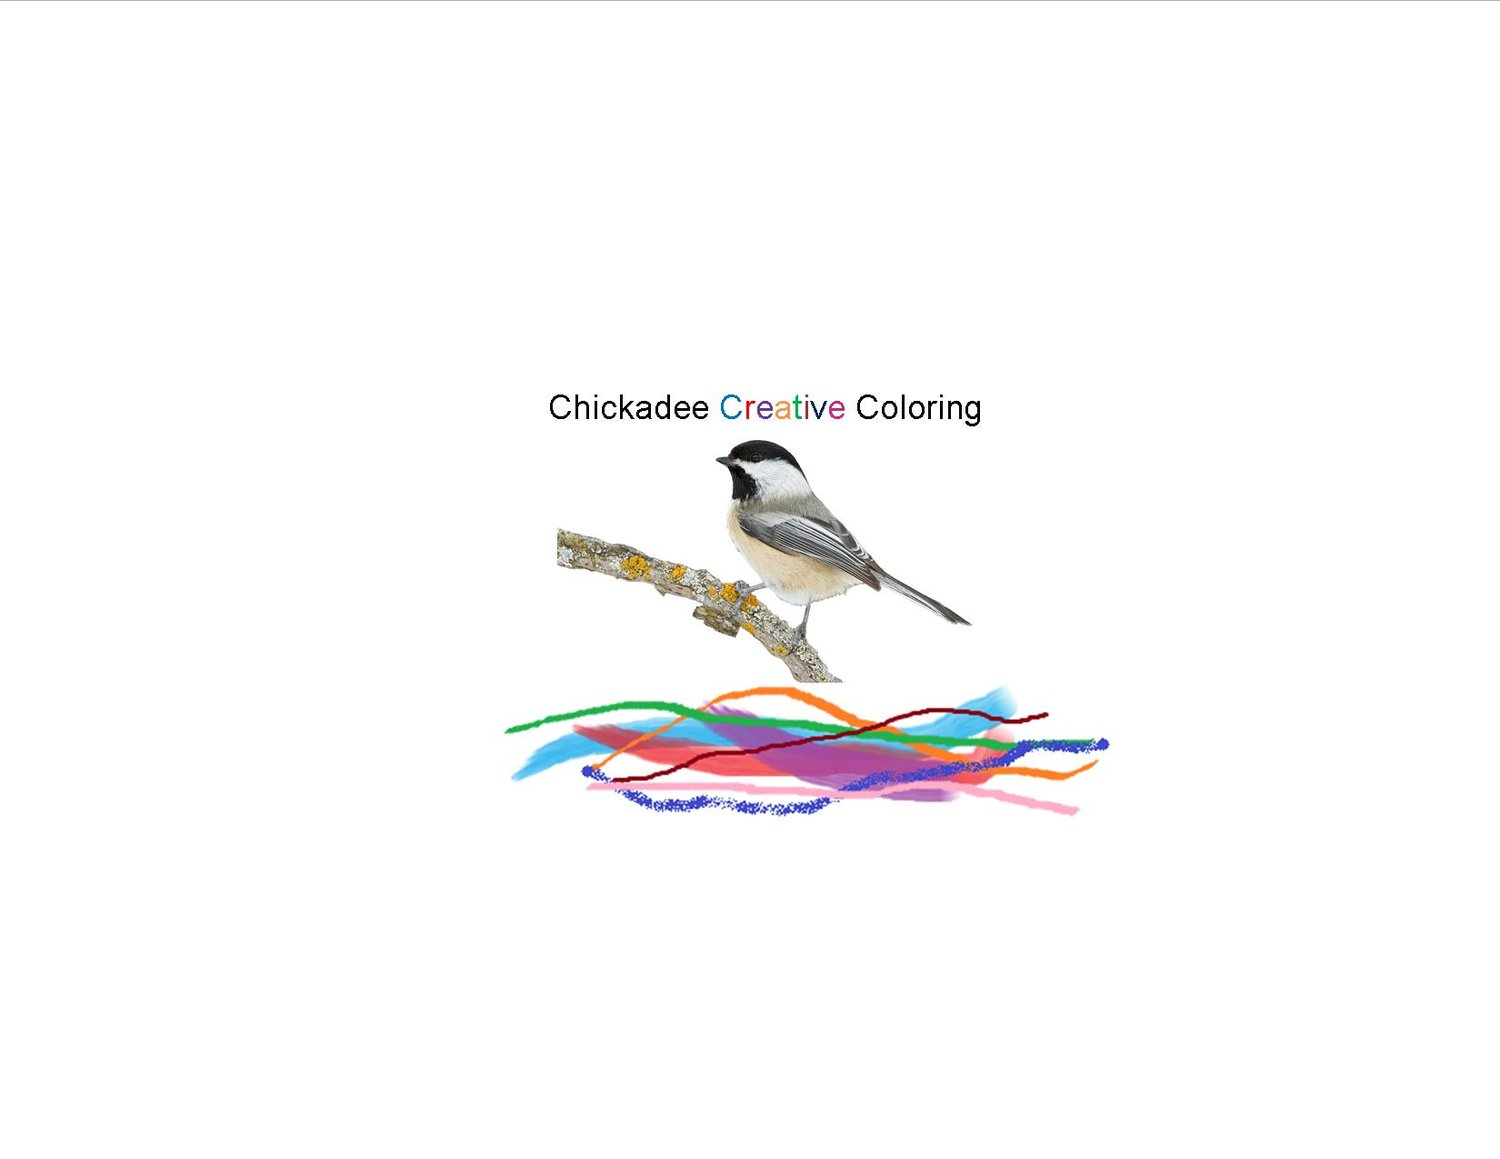 chickadee creative coloring chickadee creative coloring